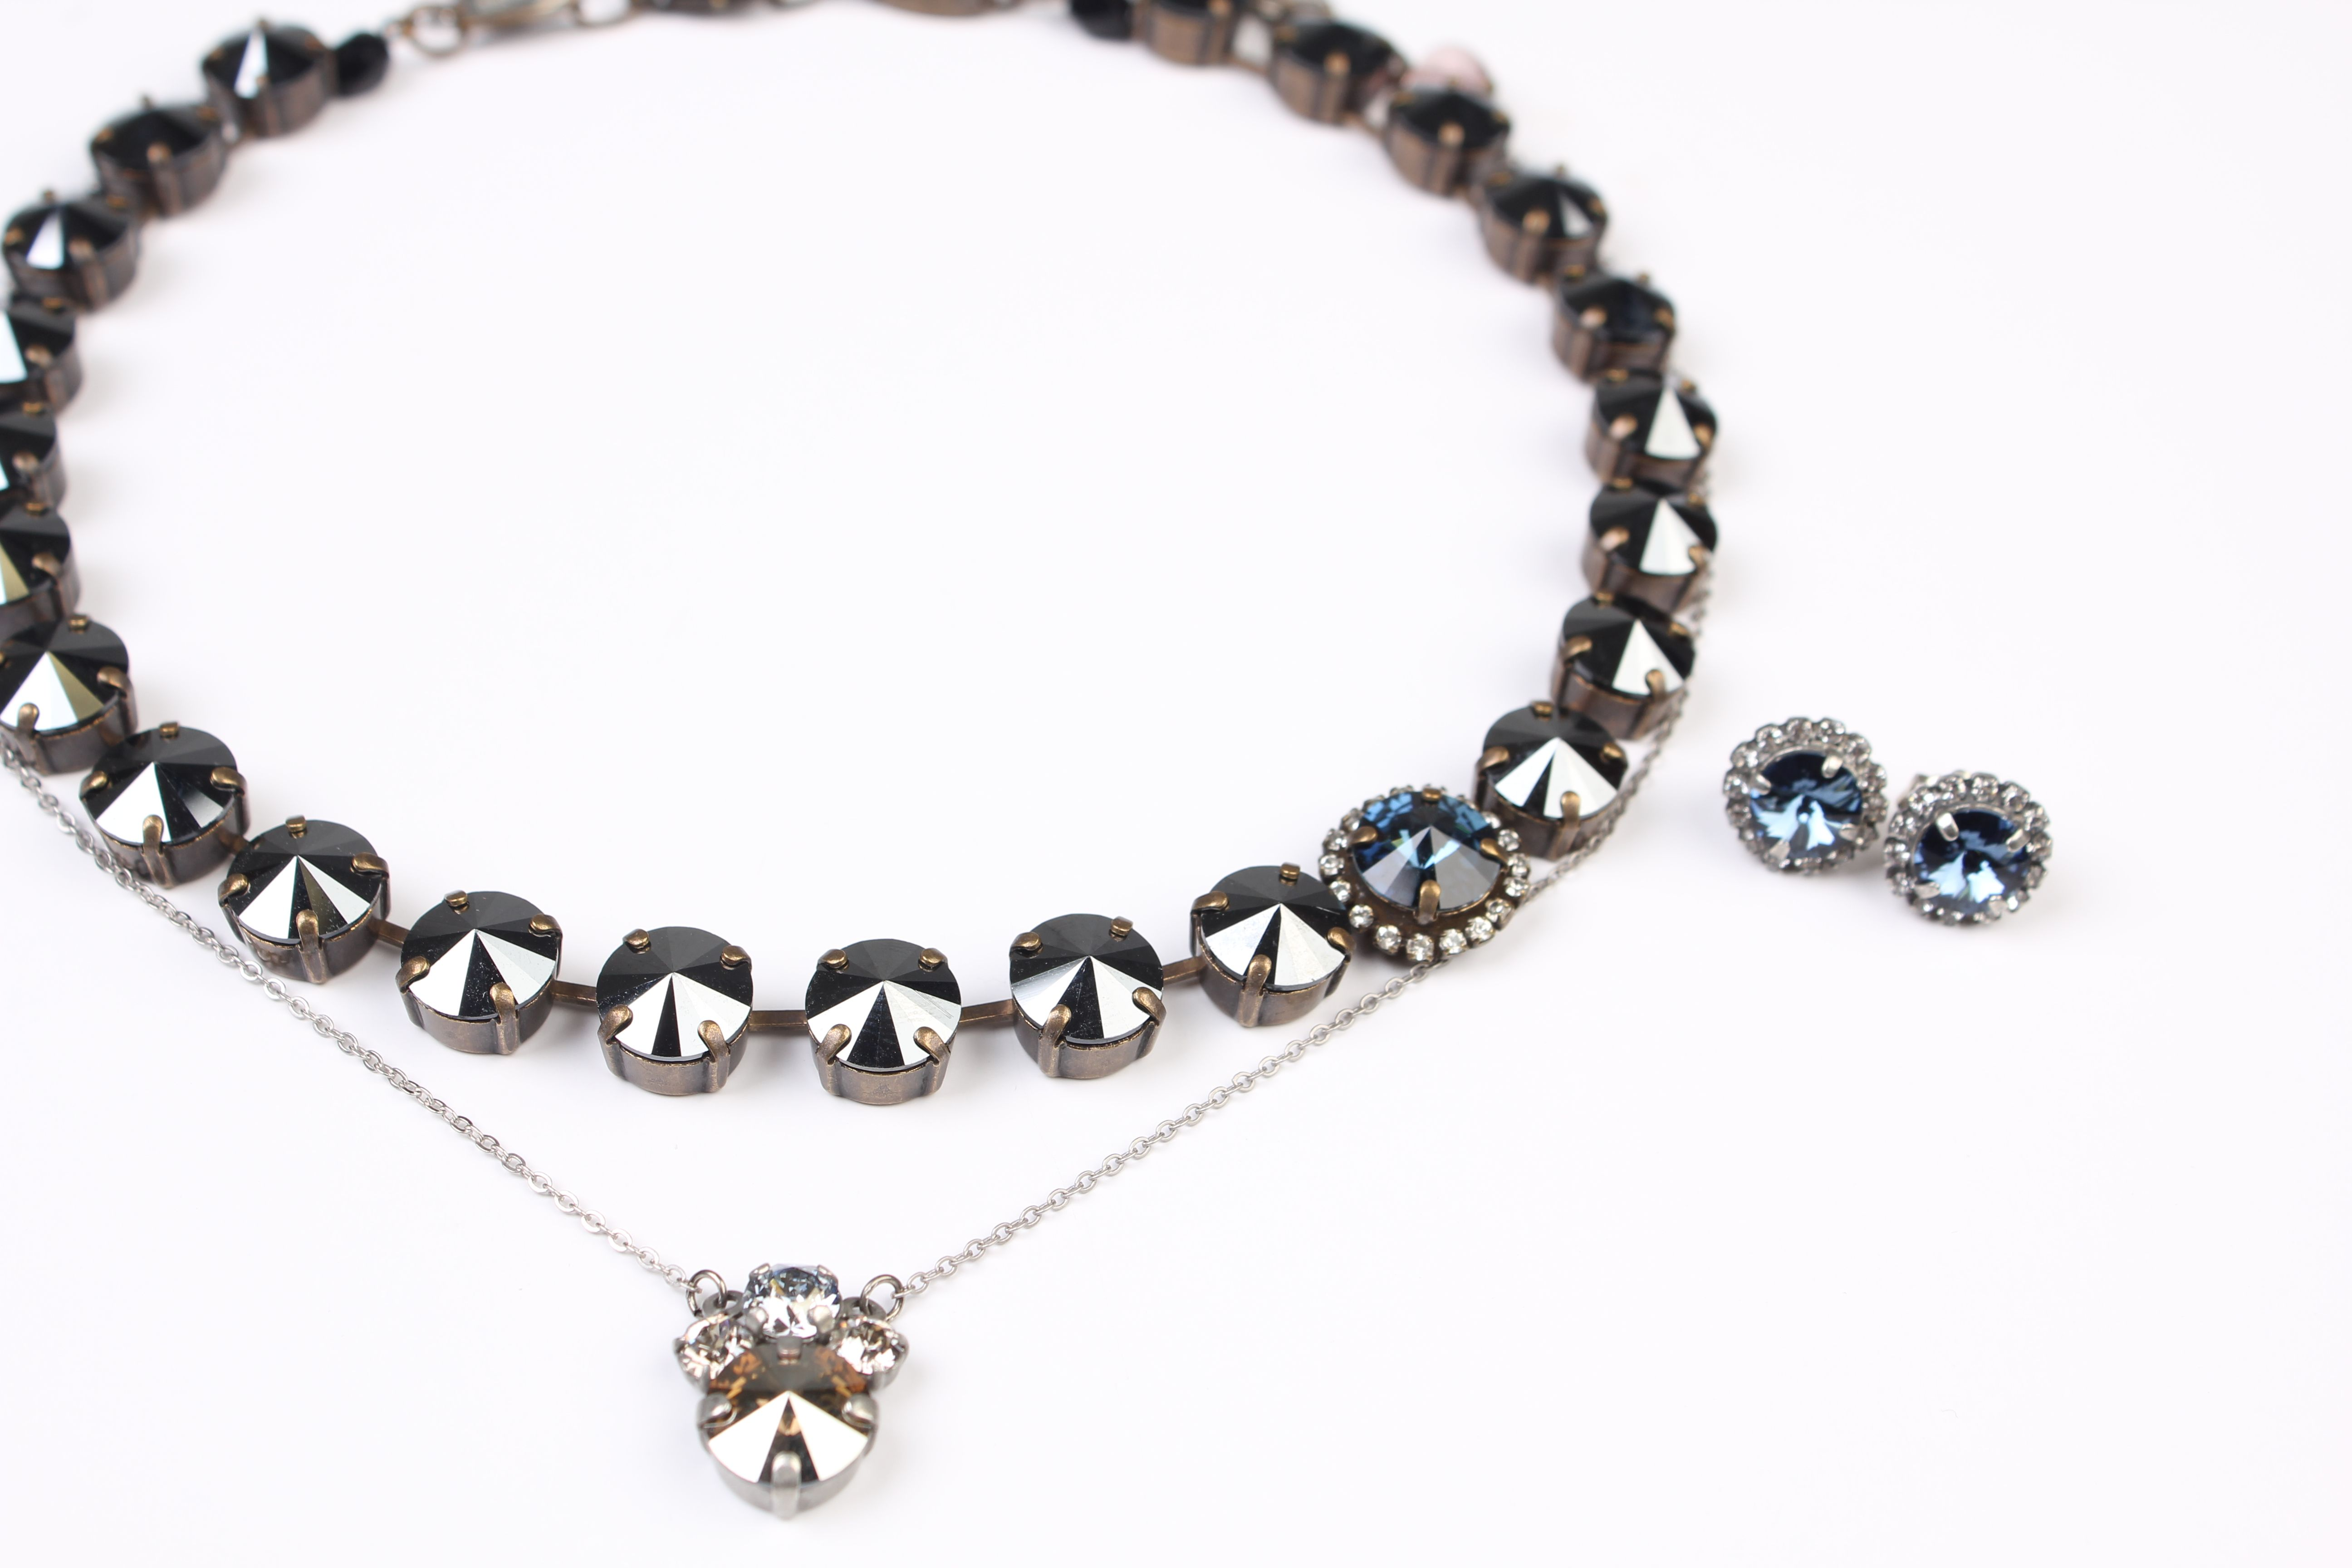 Sabika look necklace - Rhinestone Cowboy Manhattan Choker Paired With Edition Chic Cool Cluster Necklace And Heart Stripes